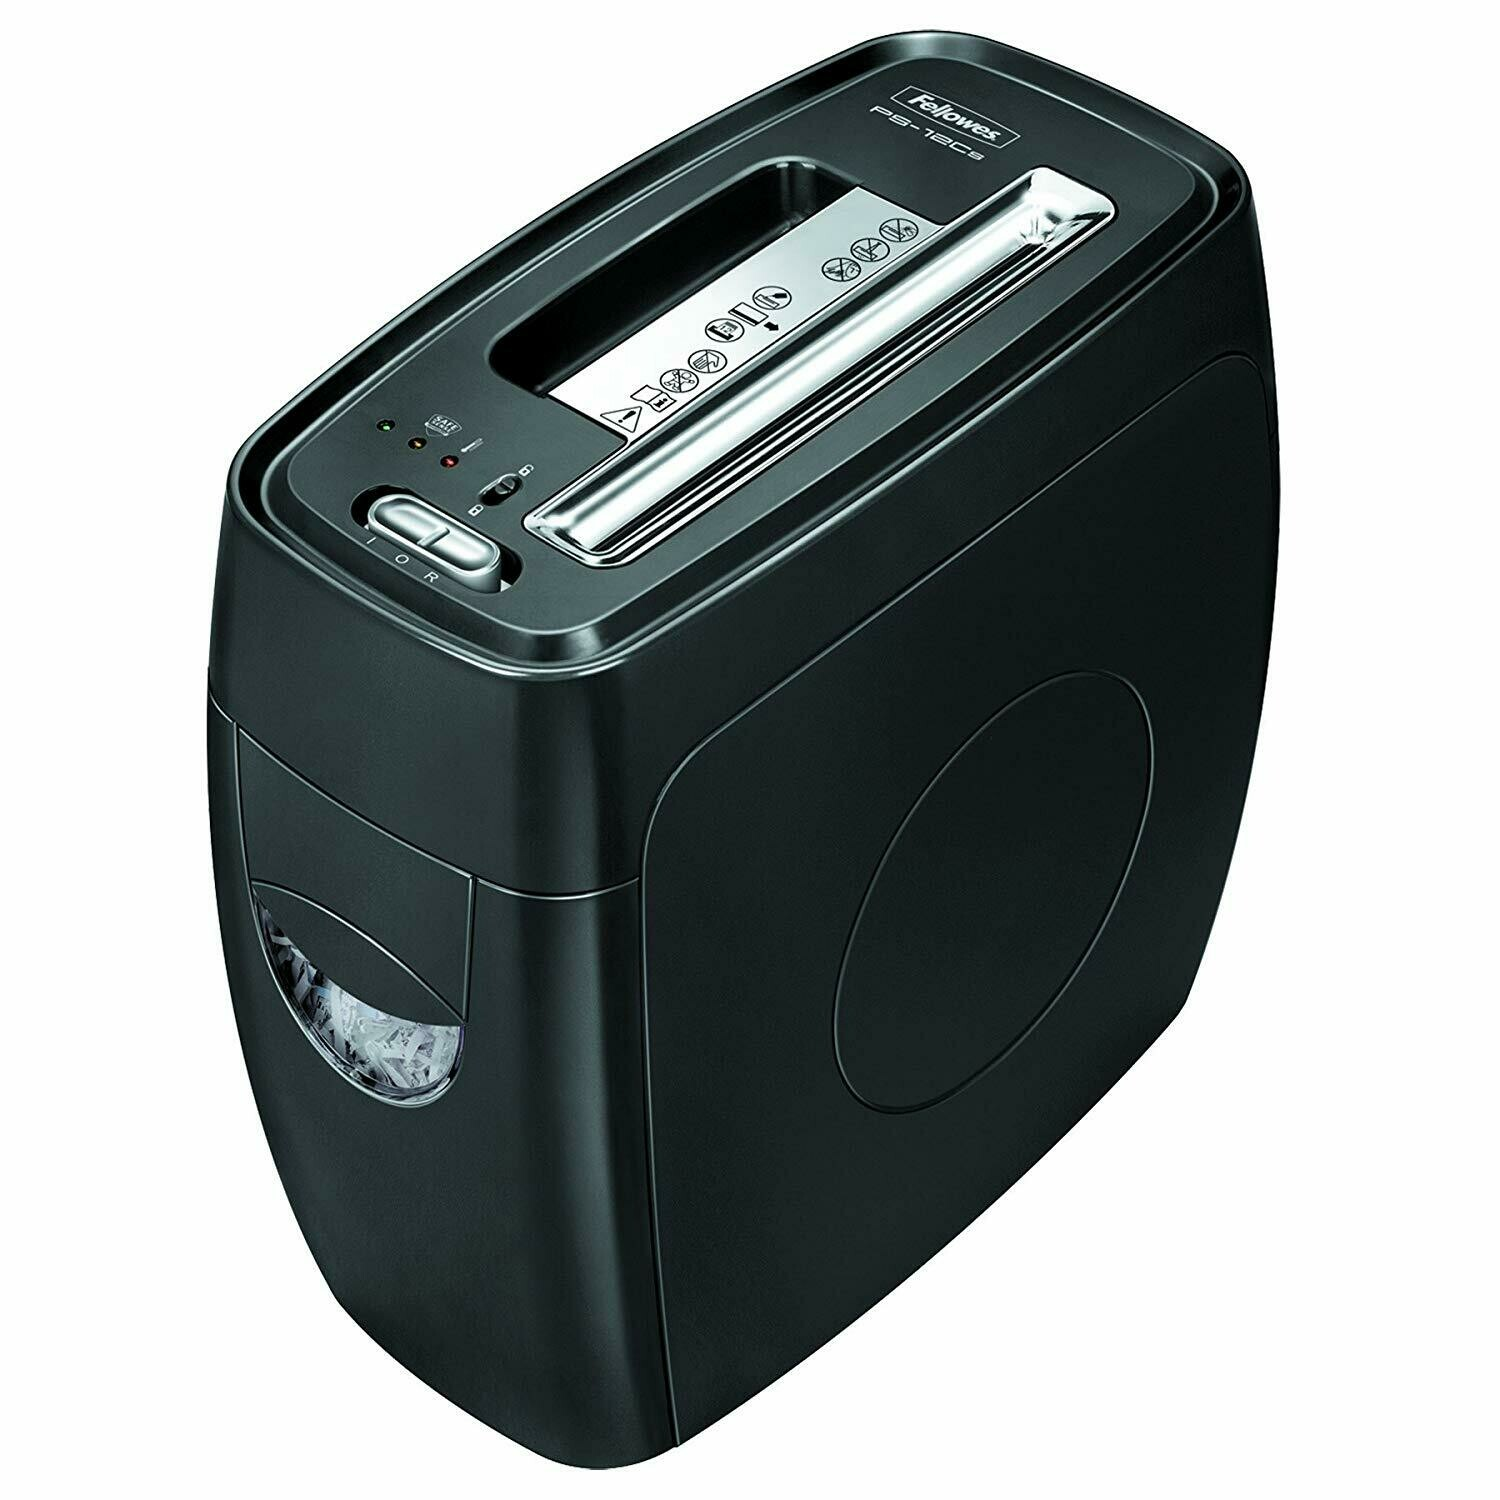 Fellowes / Powershred PS-12Cs 12 Sheet Cross-Cut Paper and Credit Card Shredder with SafeSense Technology